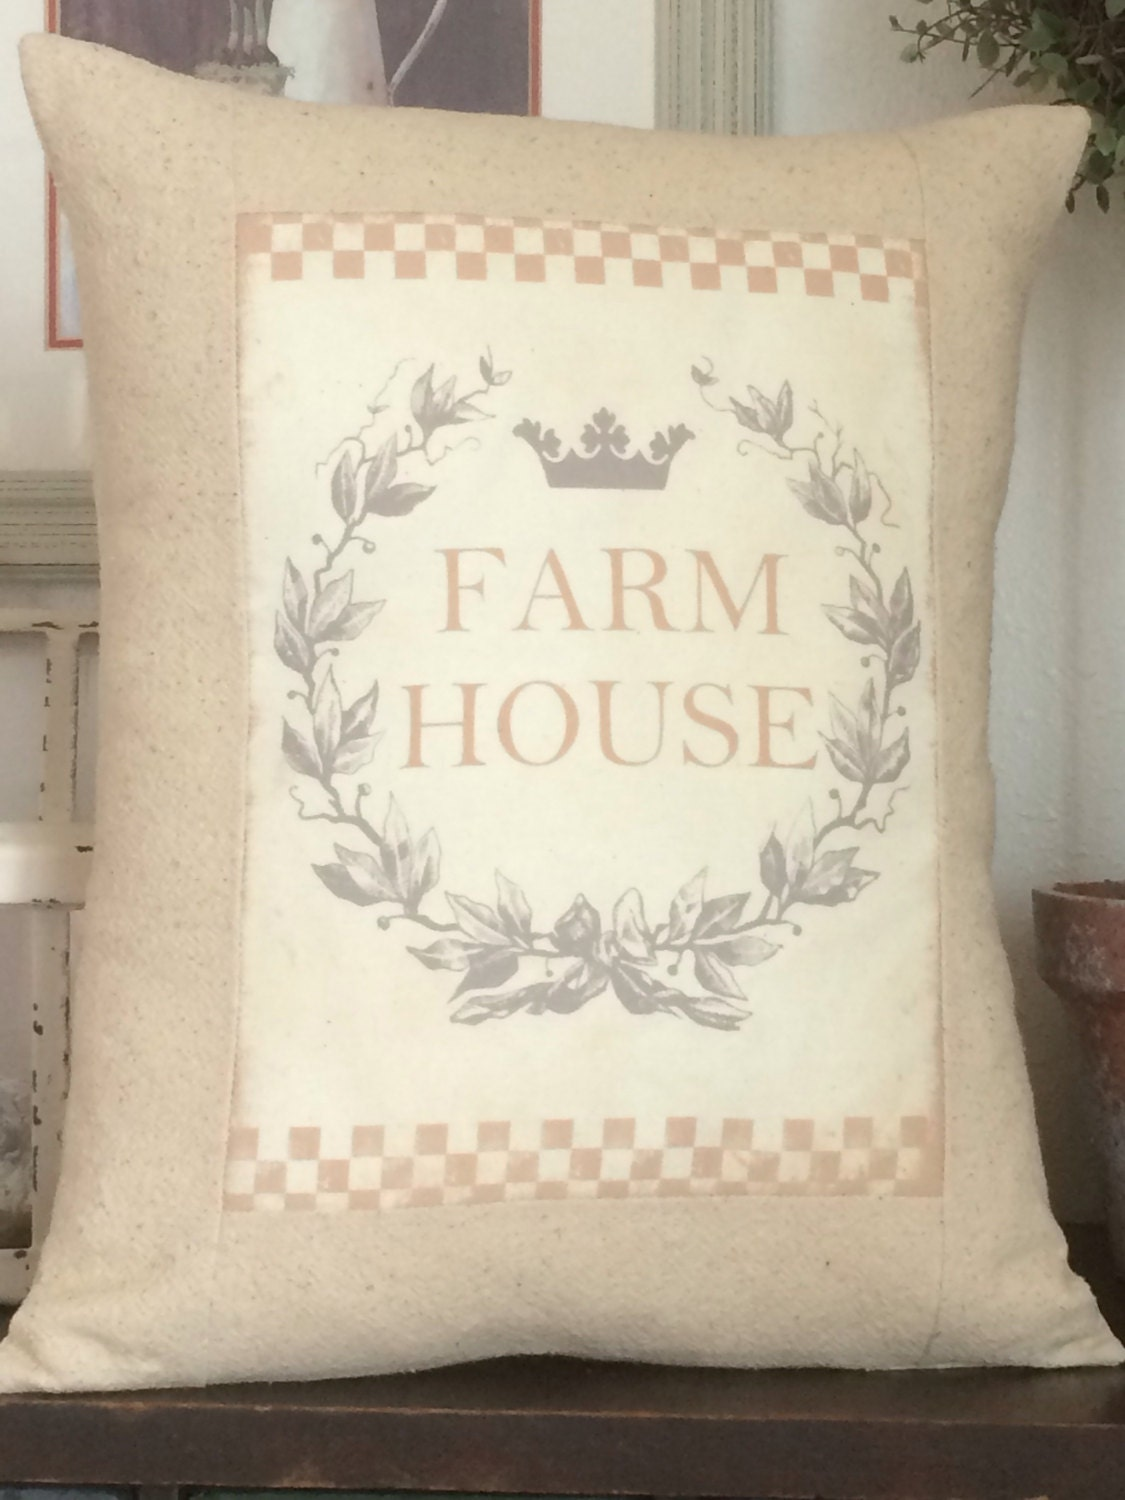 Shabby Chic Pillows On Etsy : Farmhouse Pillow Cover. Shabby Chic Pillow Cover with Pillow